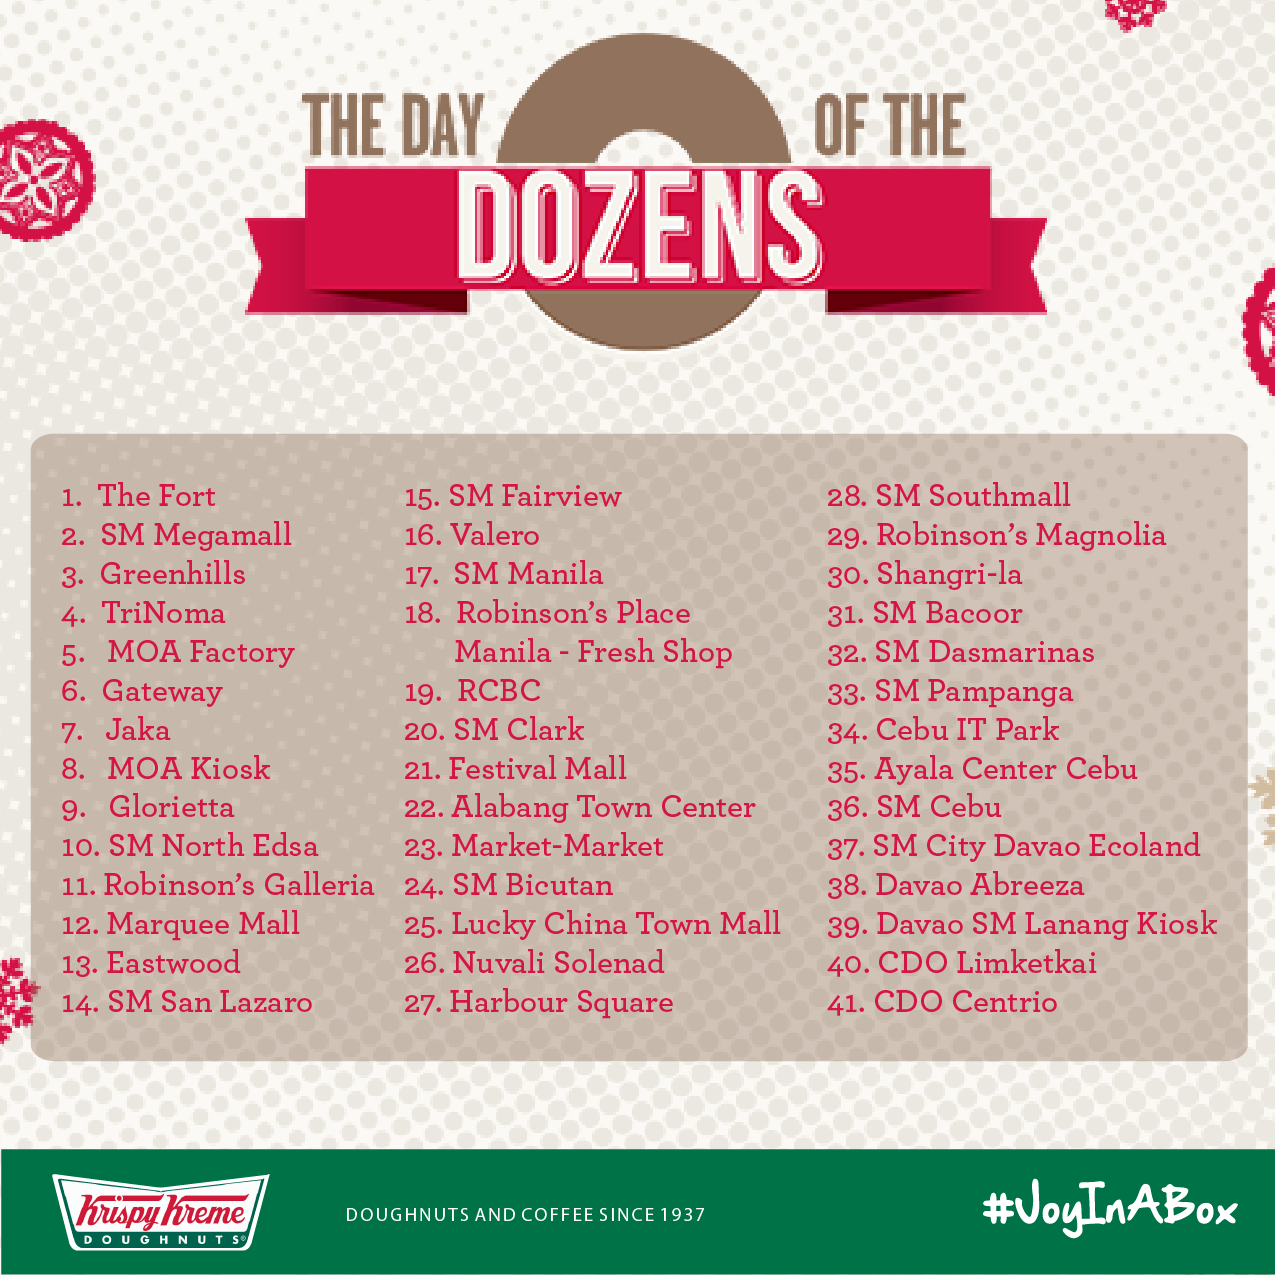 FTW! Blog, Krispy Kreme, Day of the Dozen 2014, #032eatdrink, participating stores